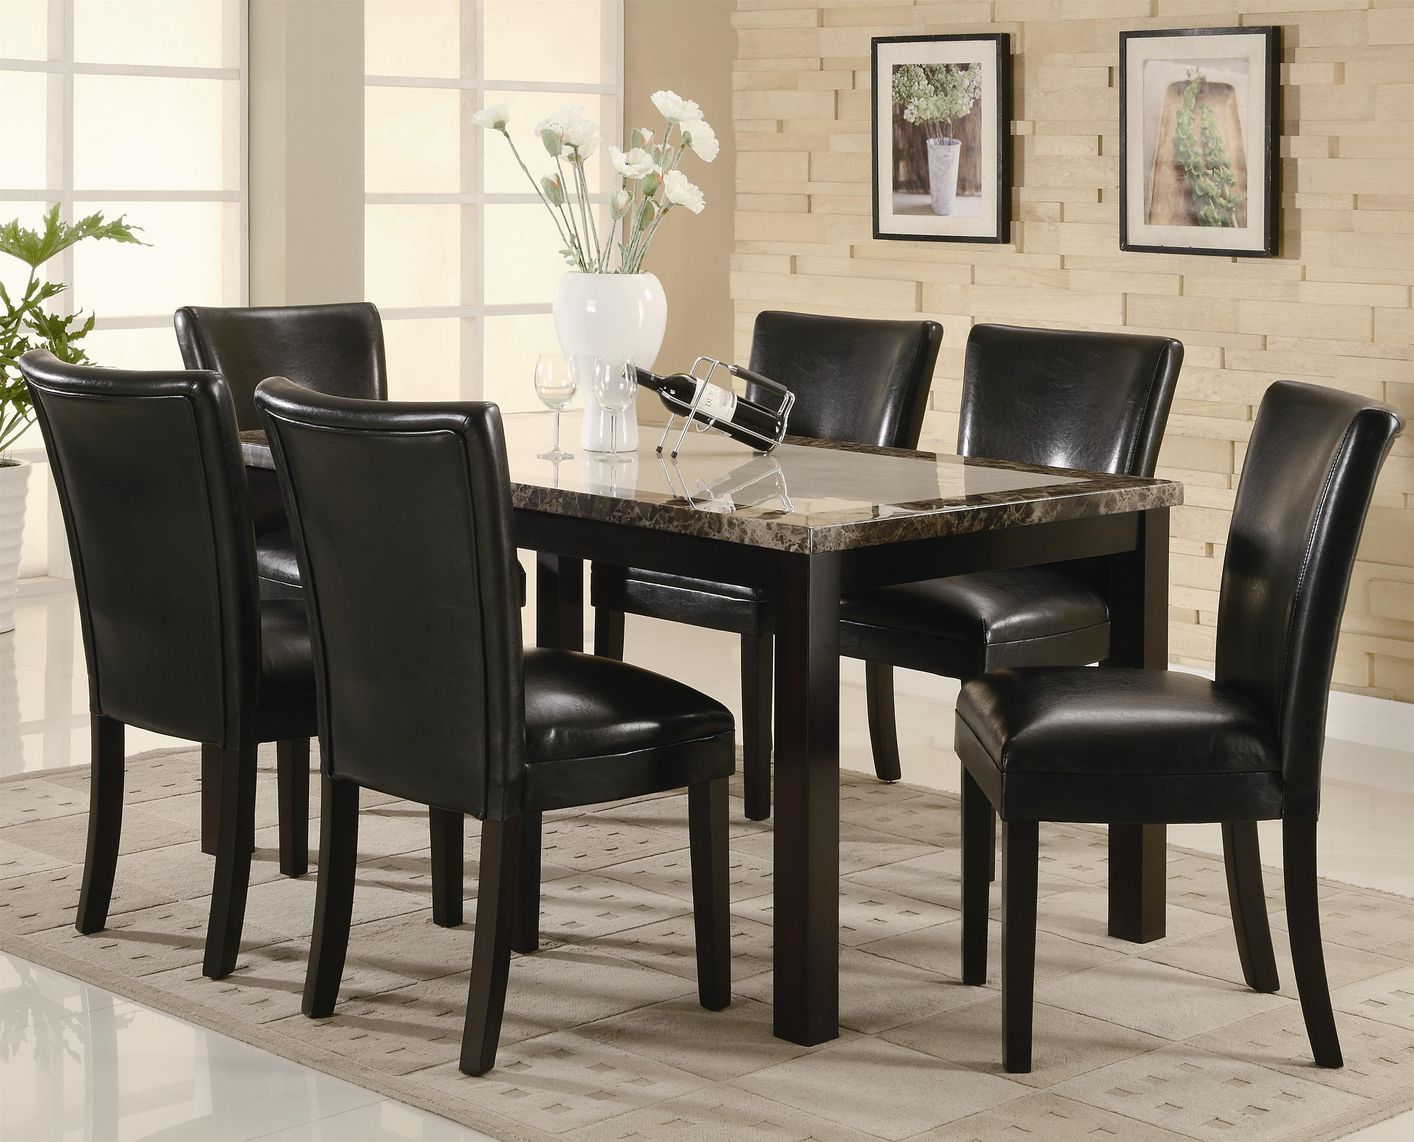 Carter Dark Brown Wood And Marble Dining Table Set - Steal-A-Sofa ...